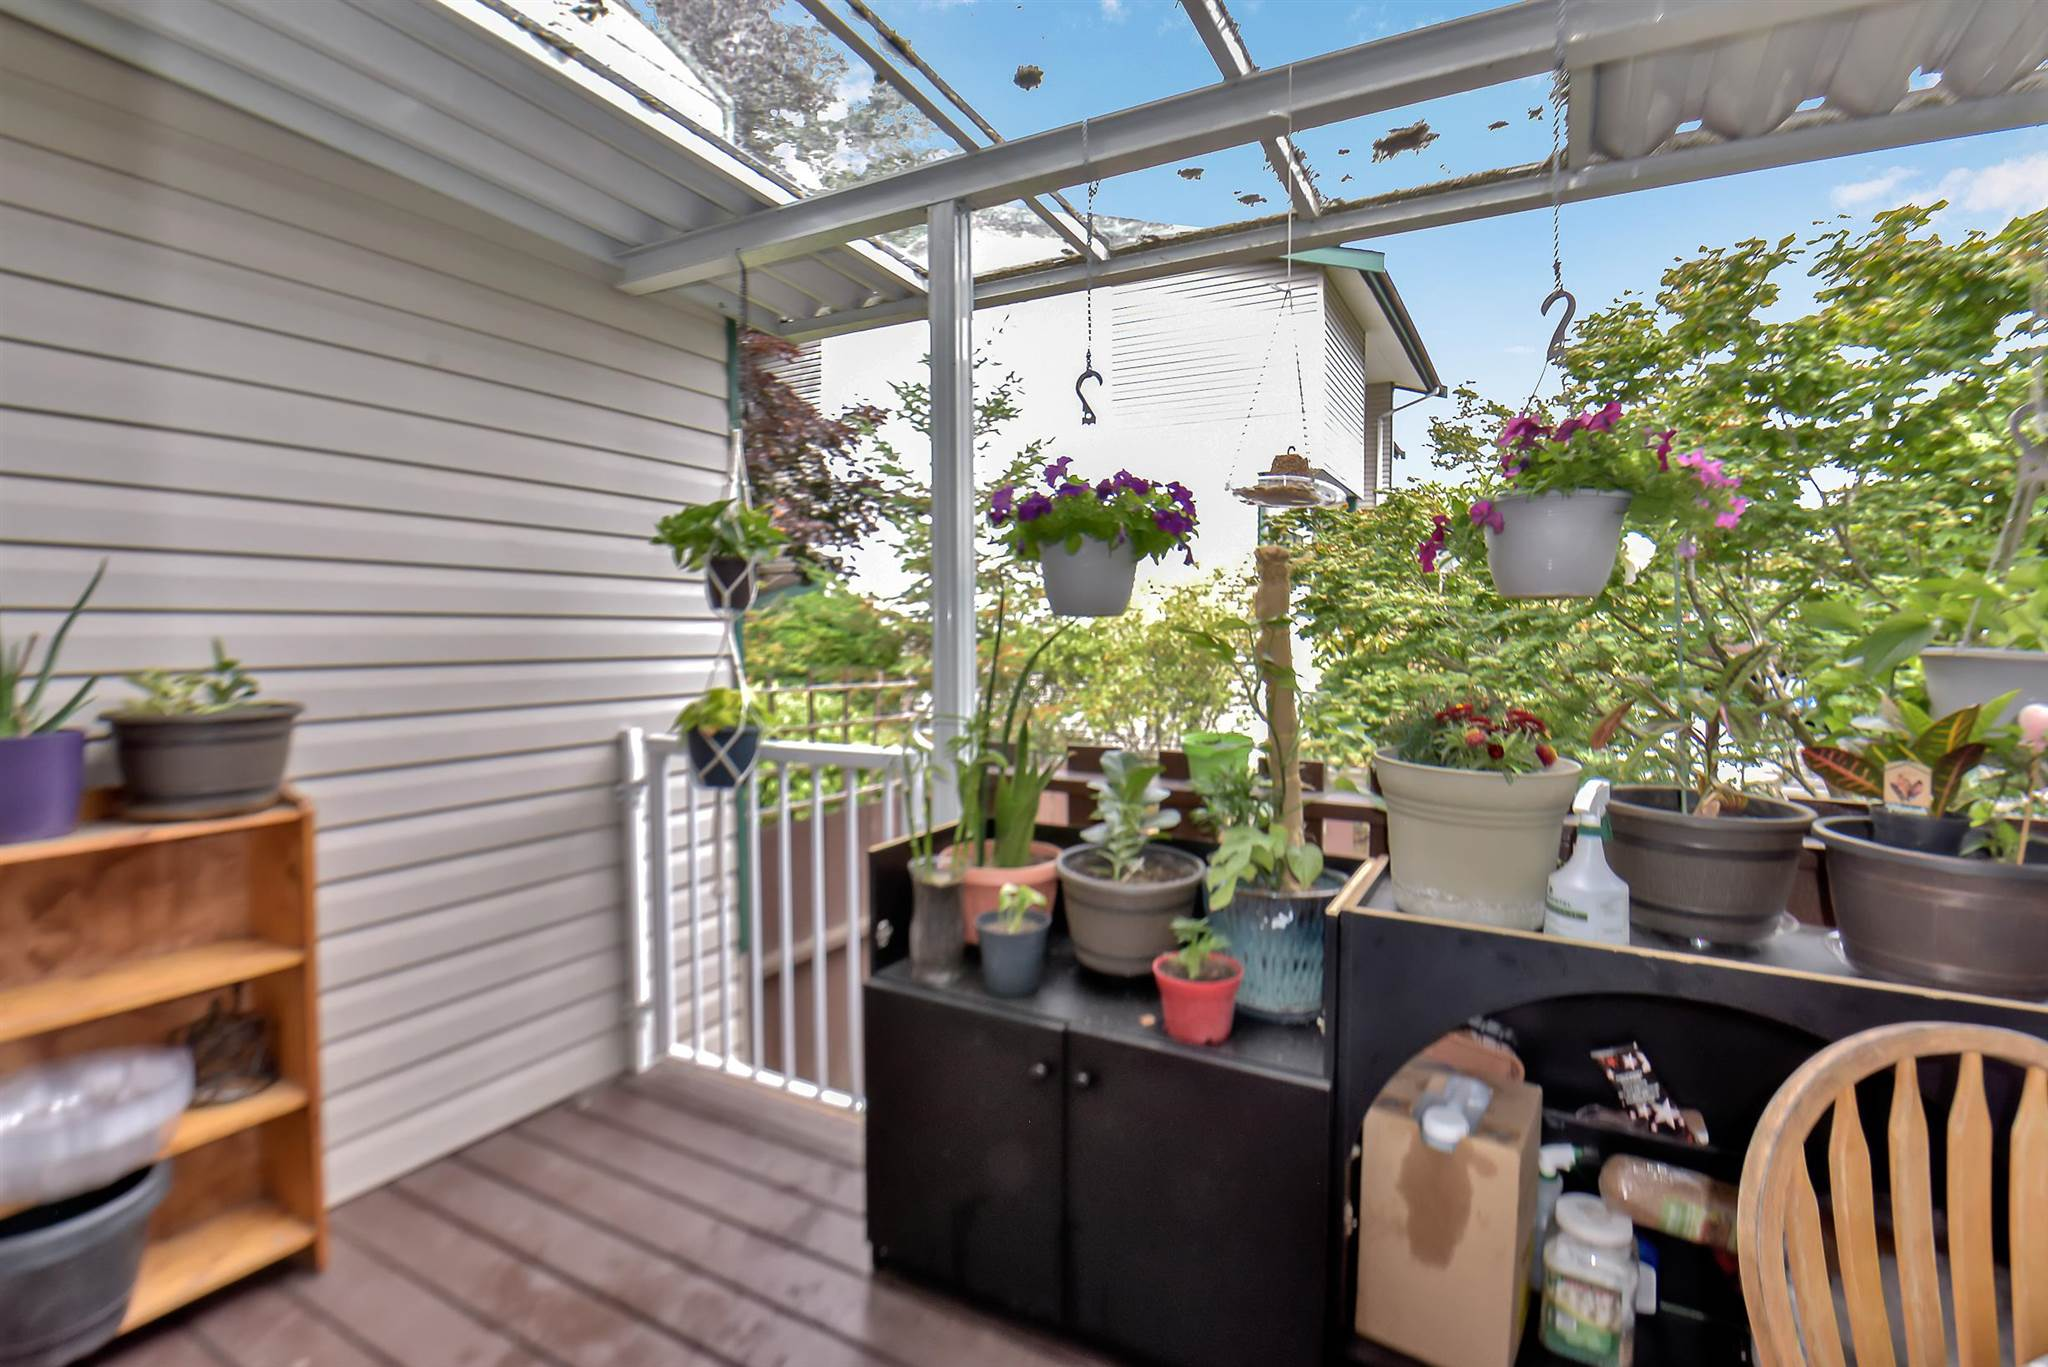 31 12045 93A AVENUE - Queen Mary Park Surrey Townhouse for sale, 4 Bedrooms (R2603608) - #23